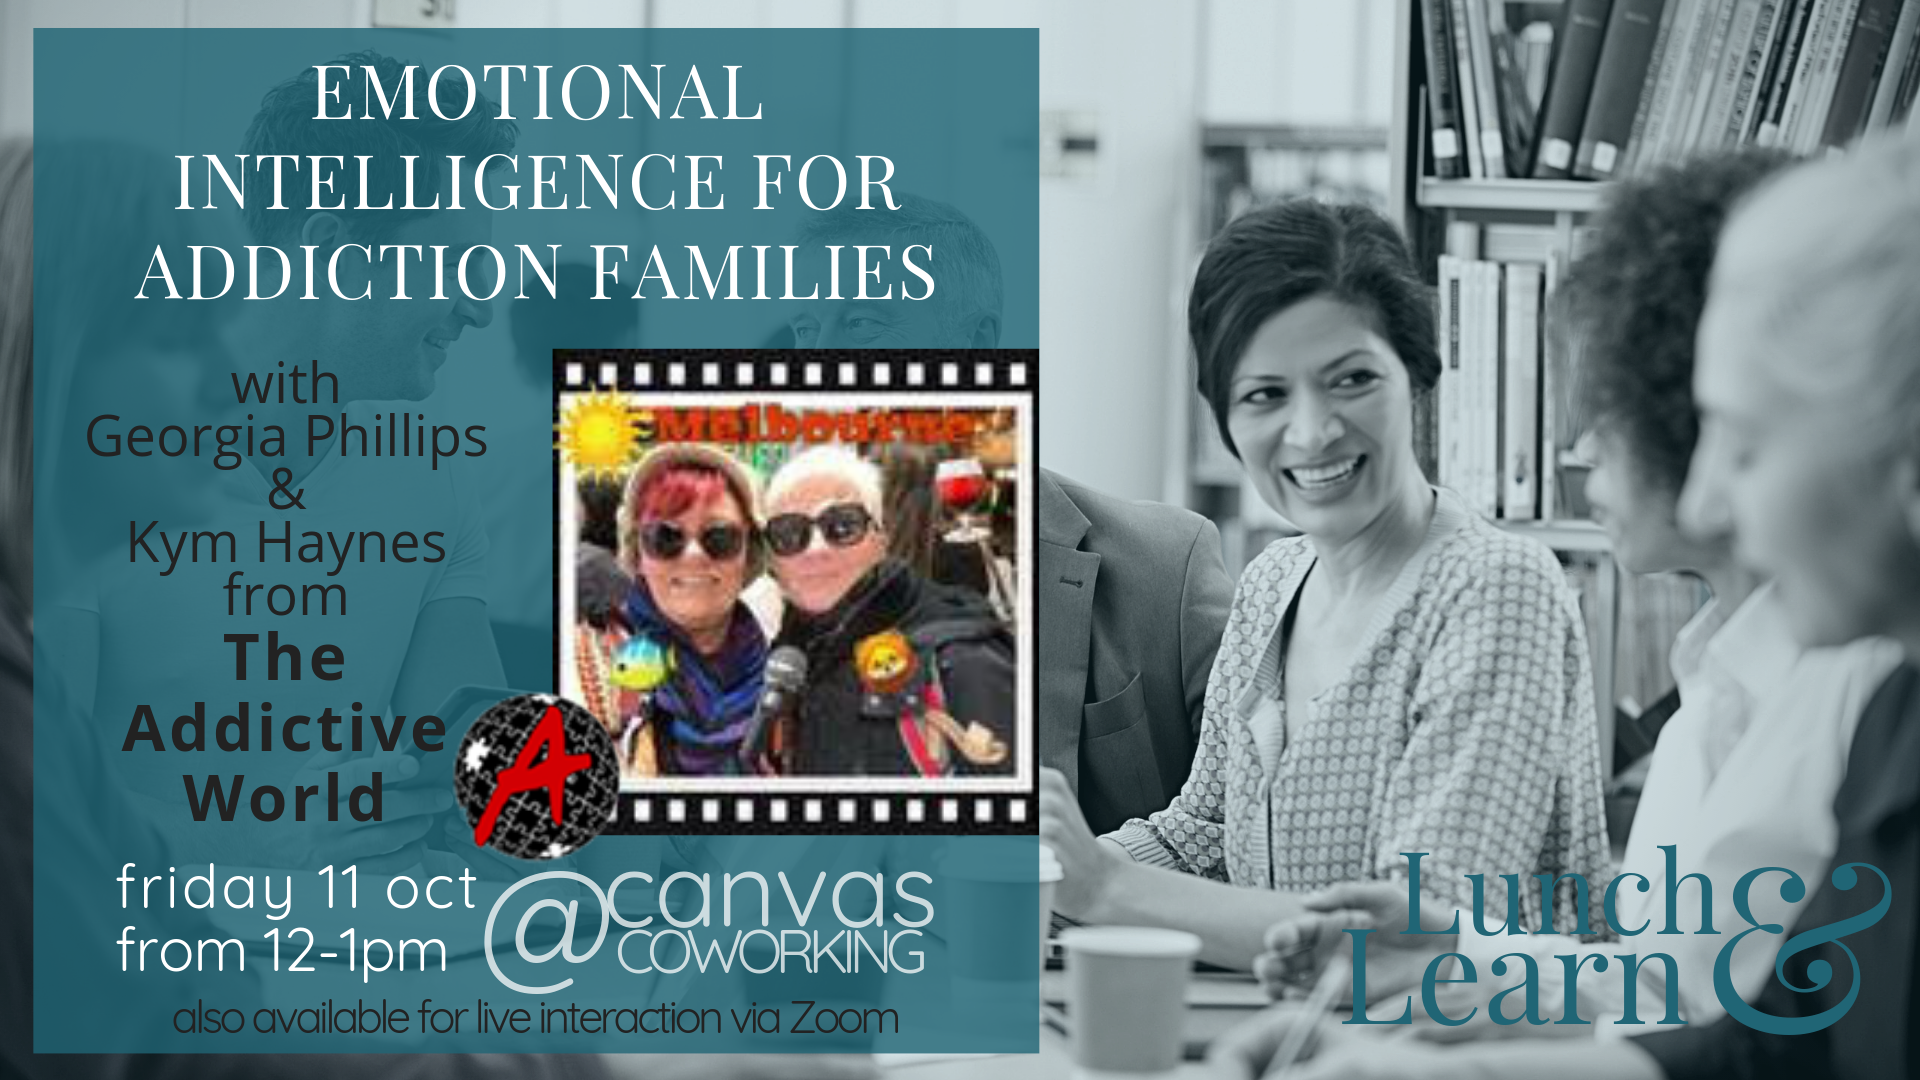 Emotional Intelligence for Addiction Families with Georgia Phillips and Kym Haynes from The Addictive World, Lunch and Learn at Canvas Coworking 11 Oct 2019